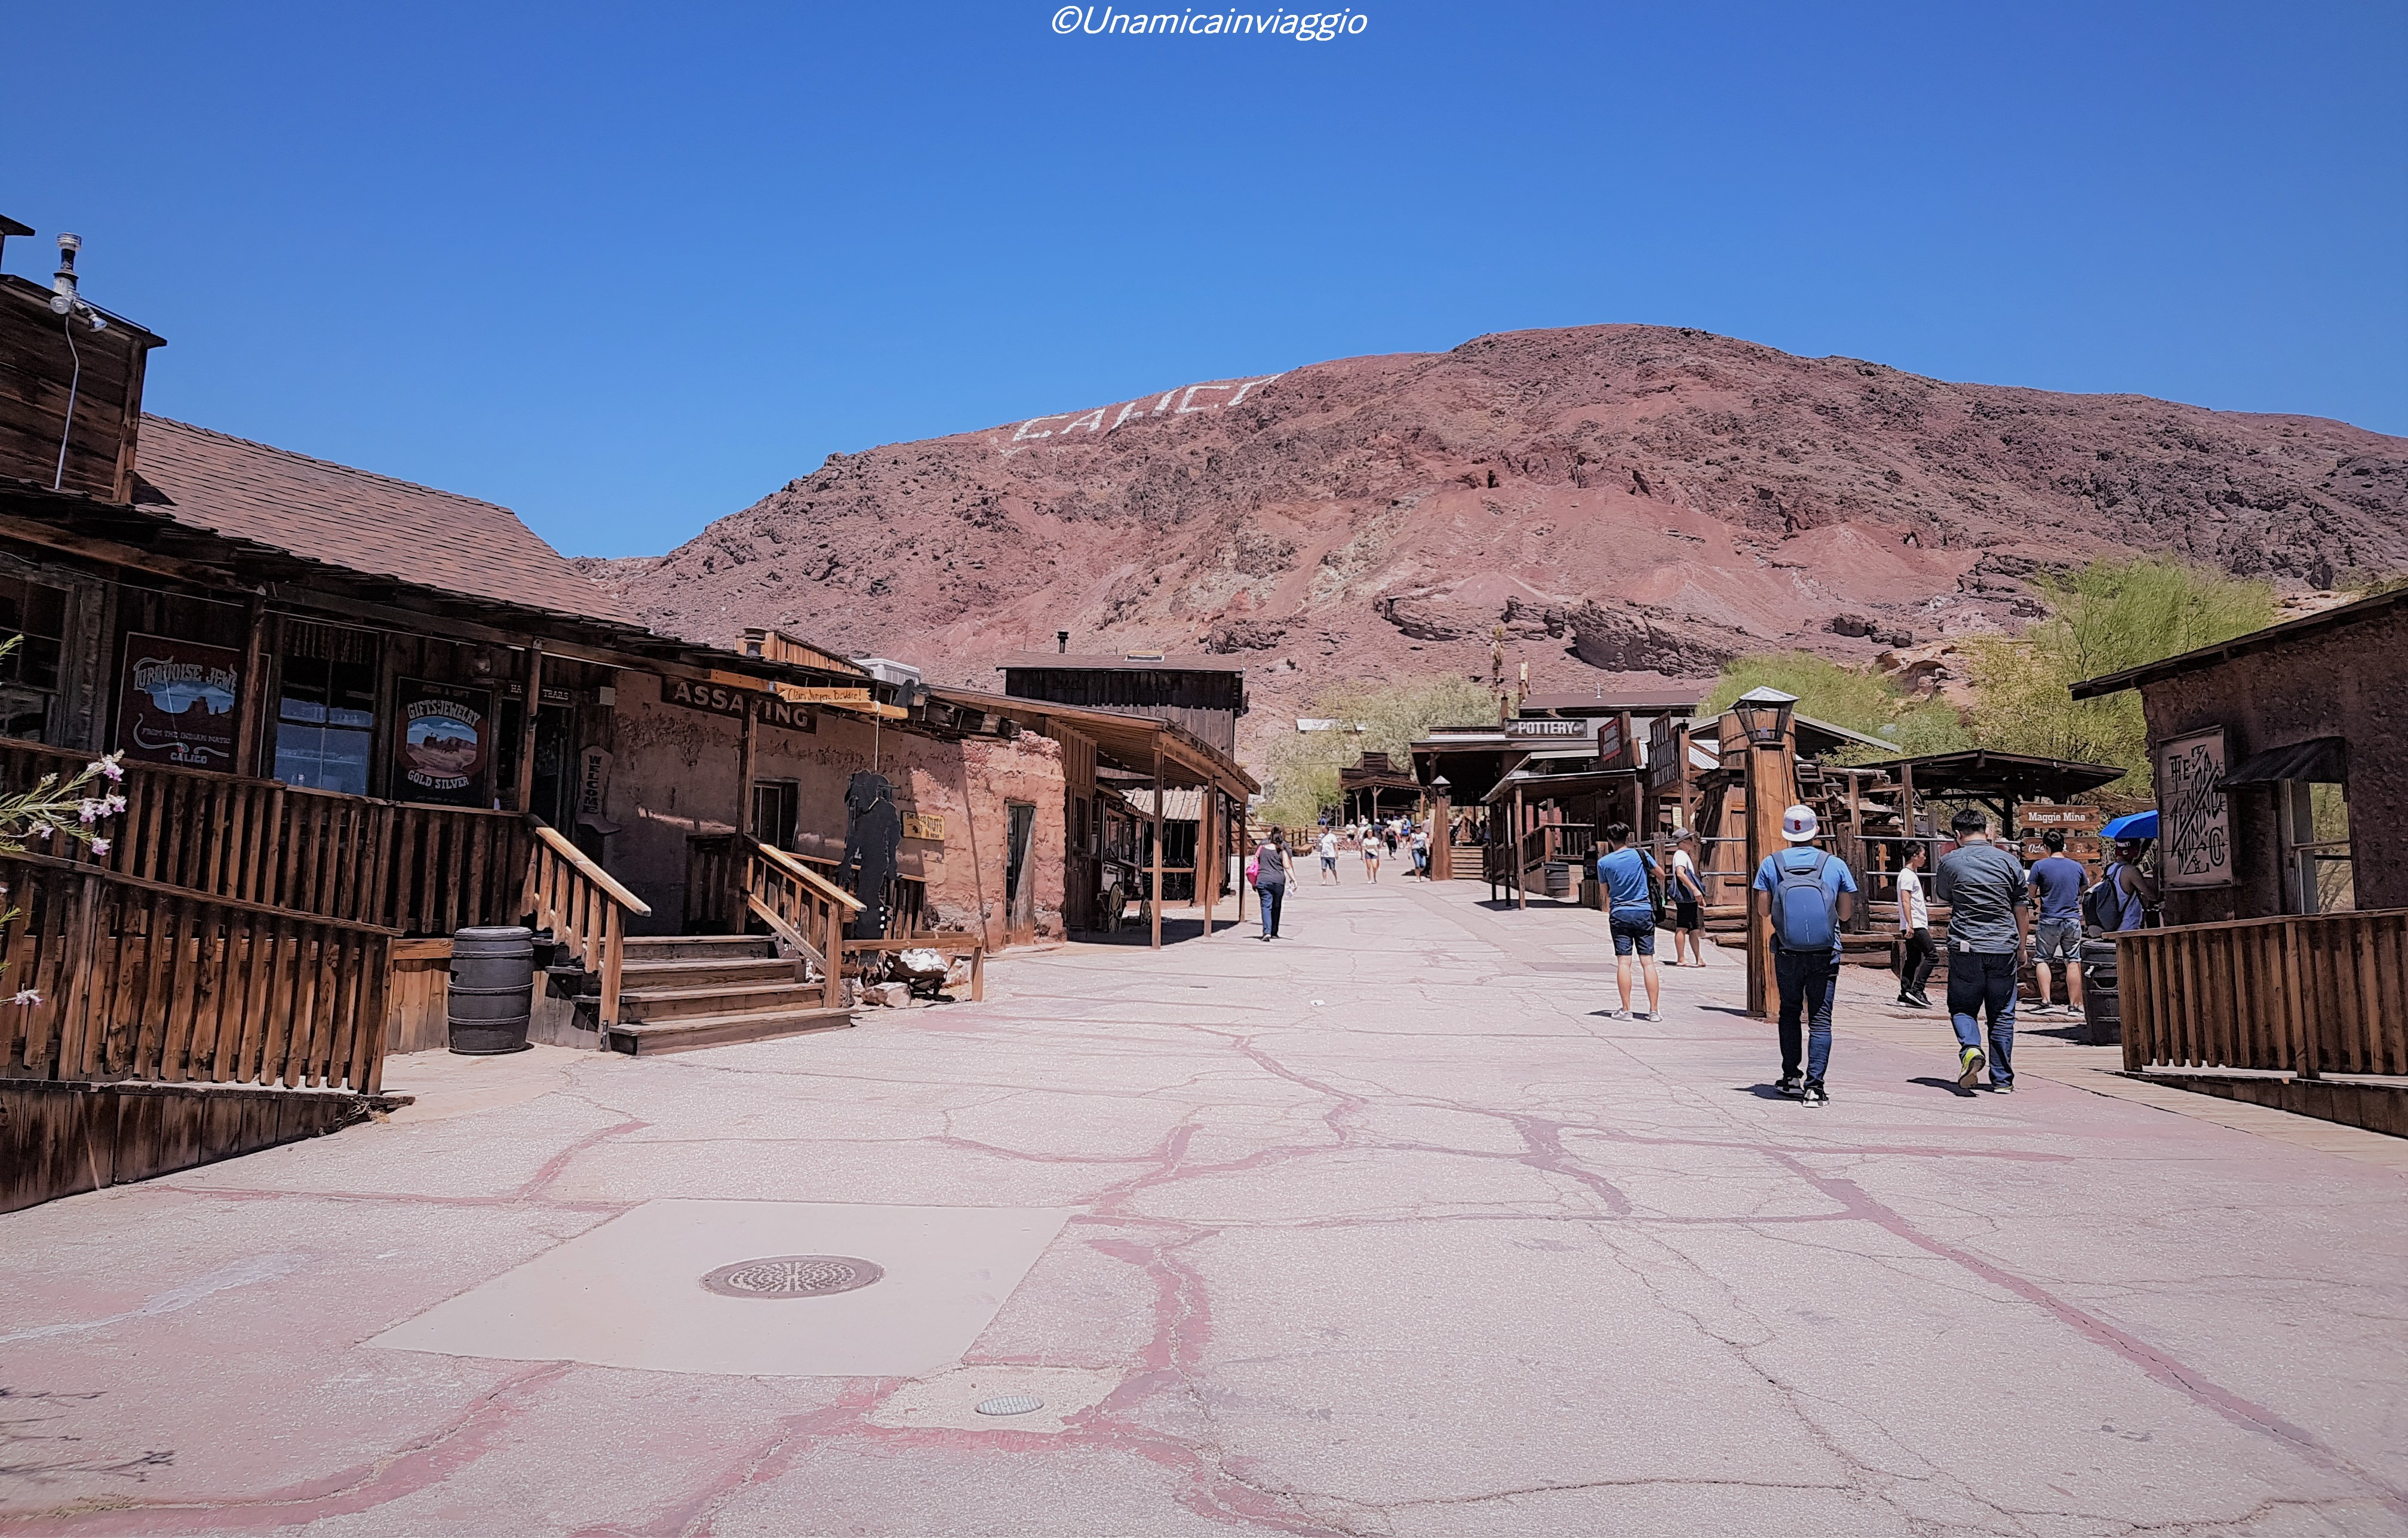 visitare calico ghost town - città fantasma california